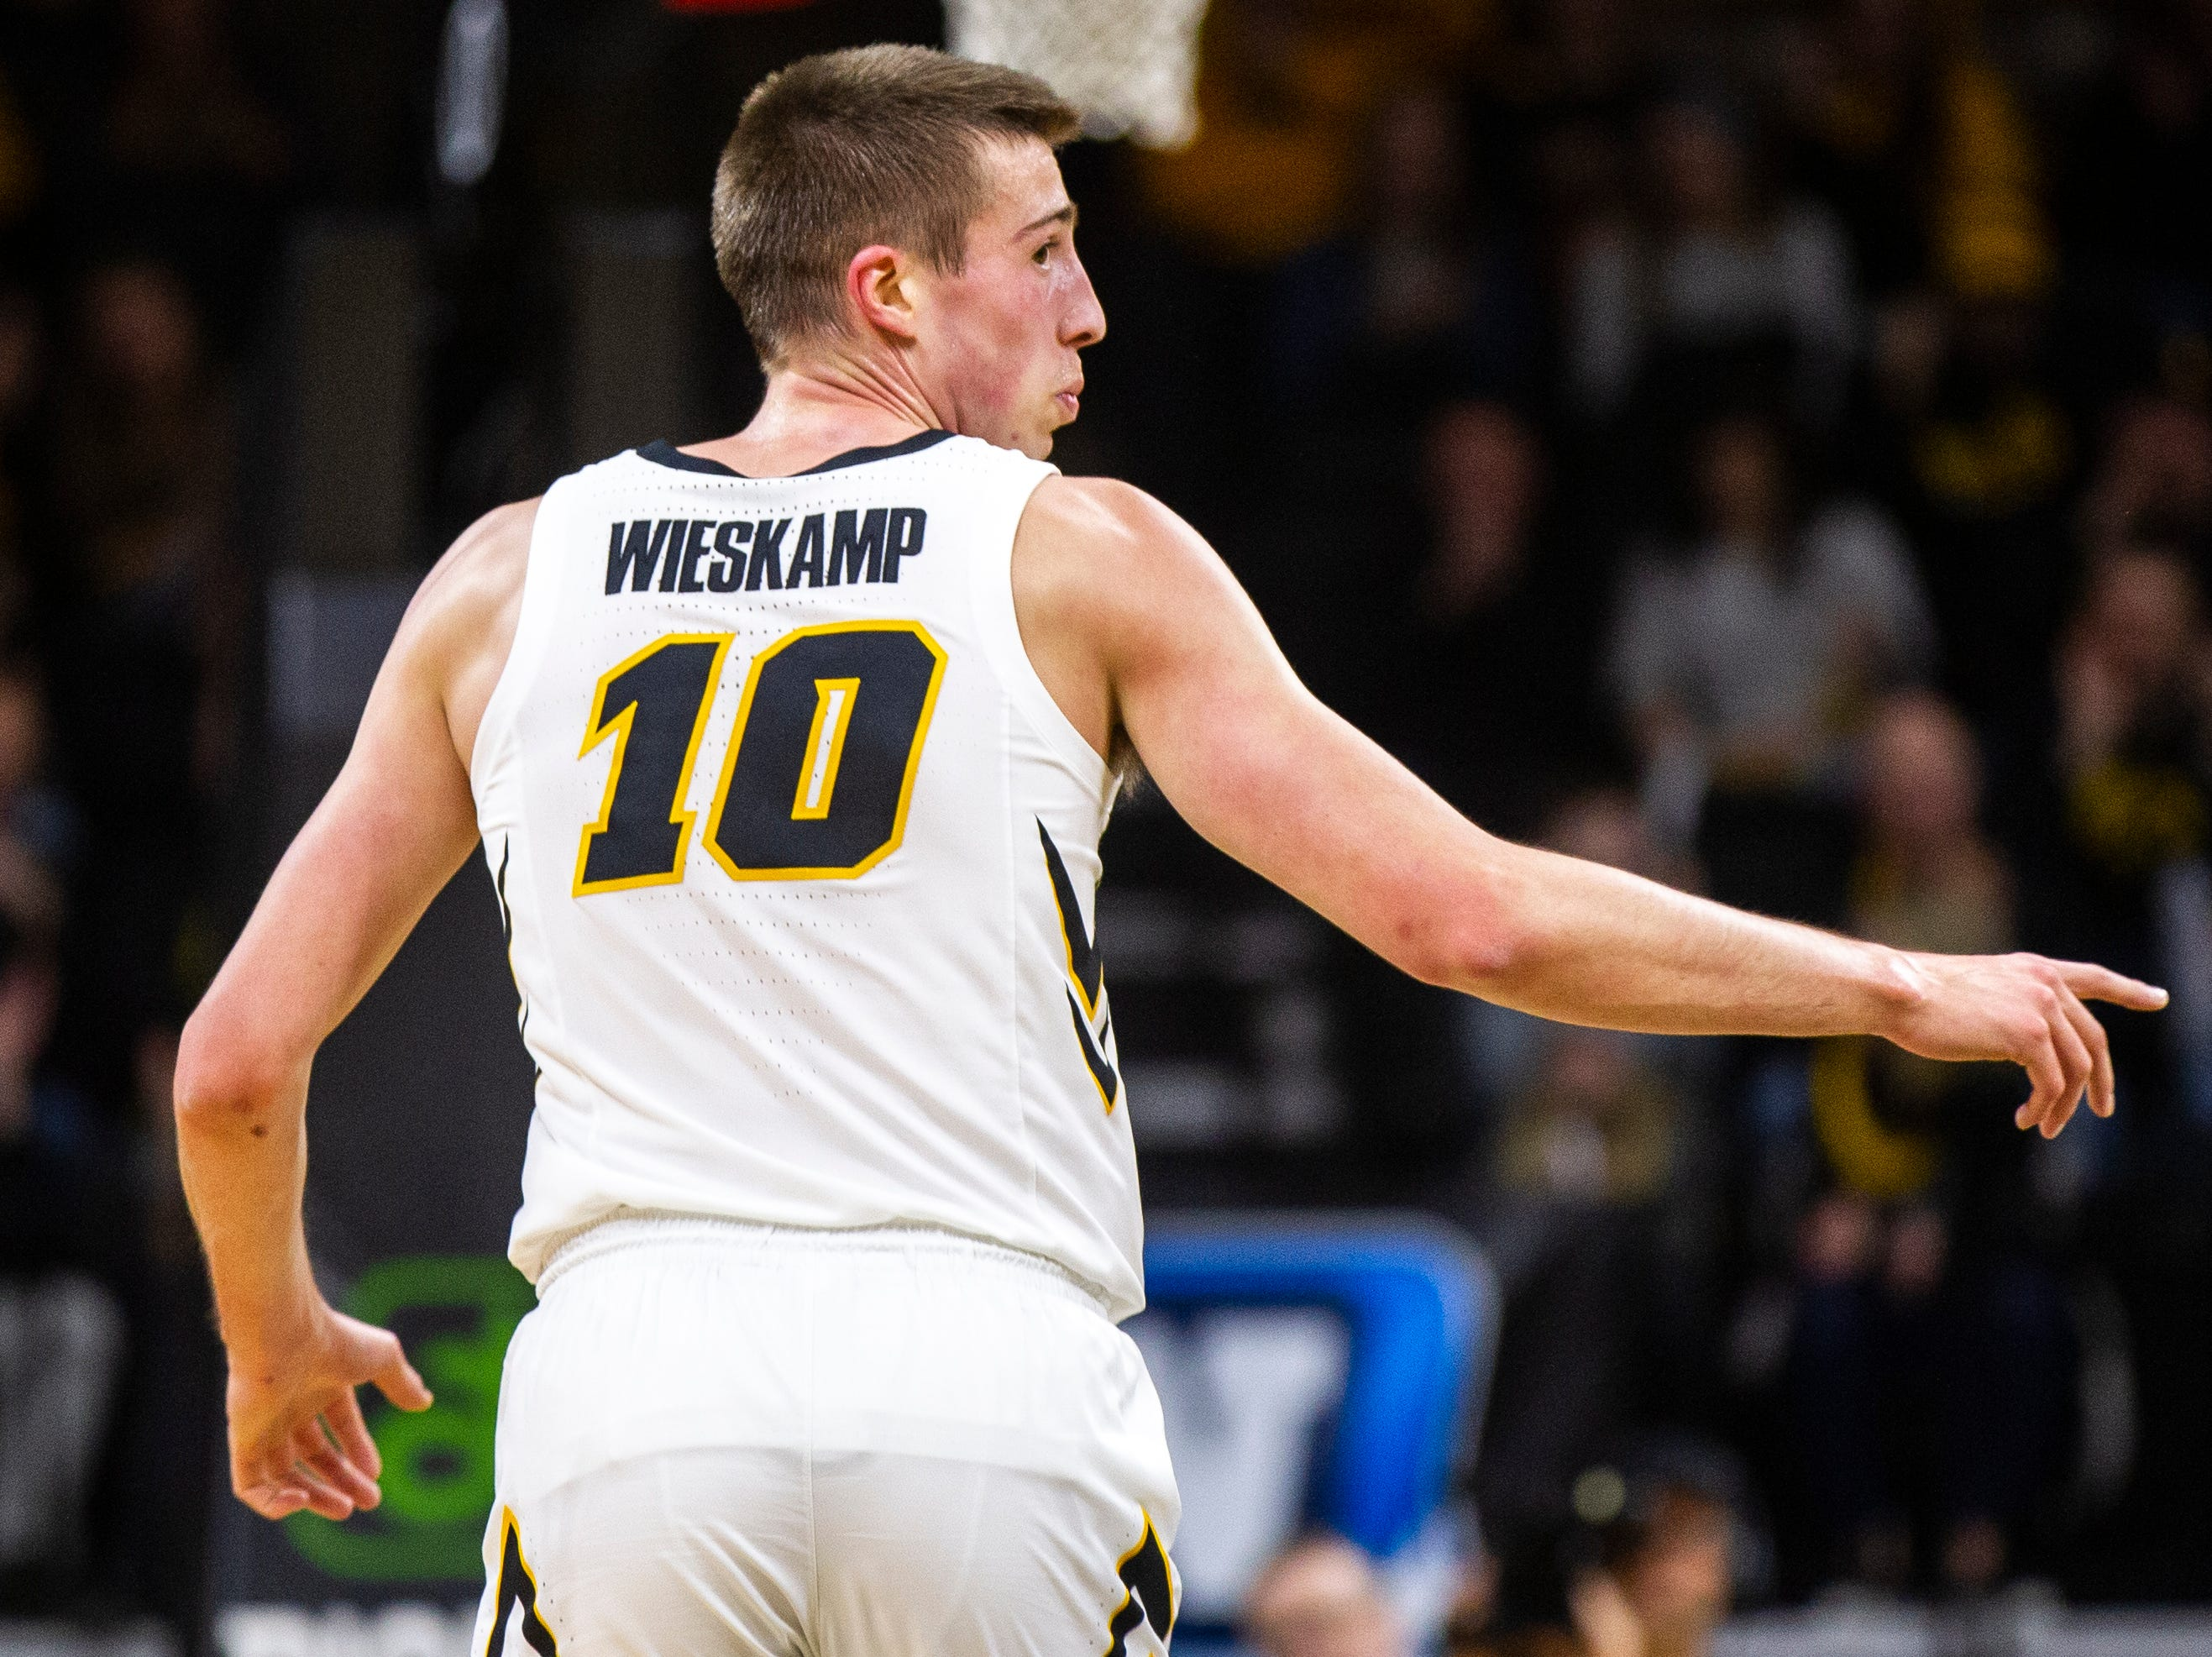 Iowa guard Joe Wieskamp (10) gestures after making a shot during an NCAA men's basketball game on Wednesday, Nov. 21, 2018, at Carver-Hawkeye Arena in Iowa City.